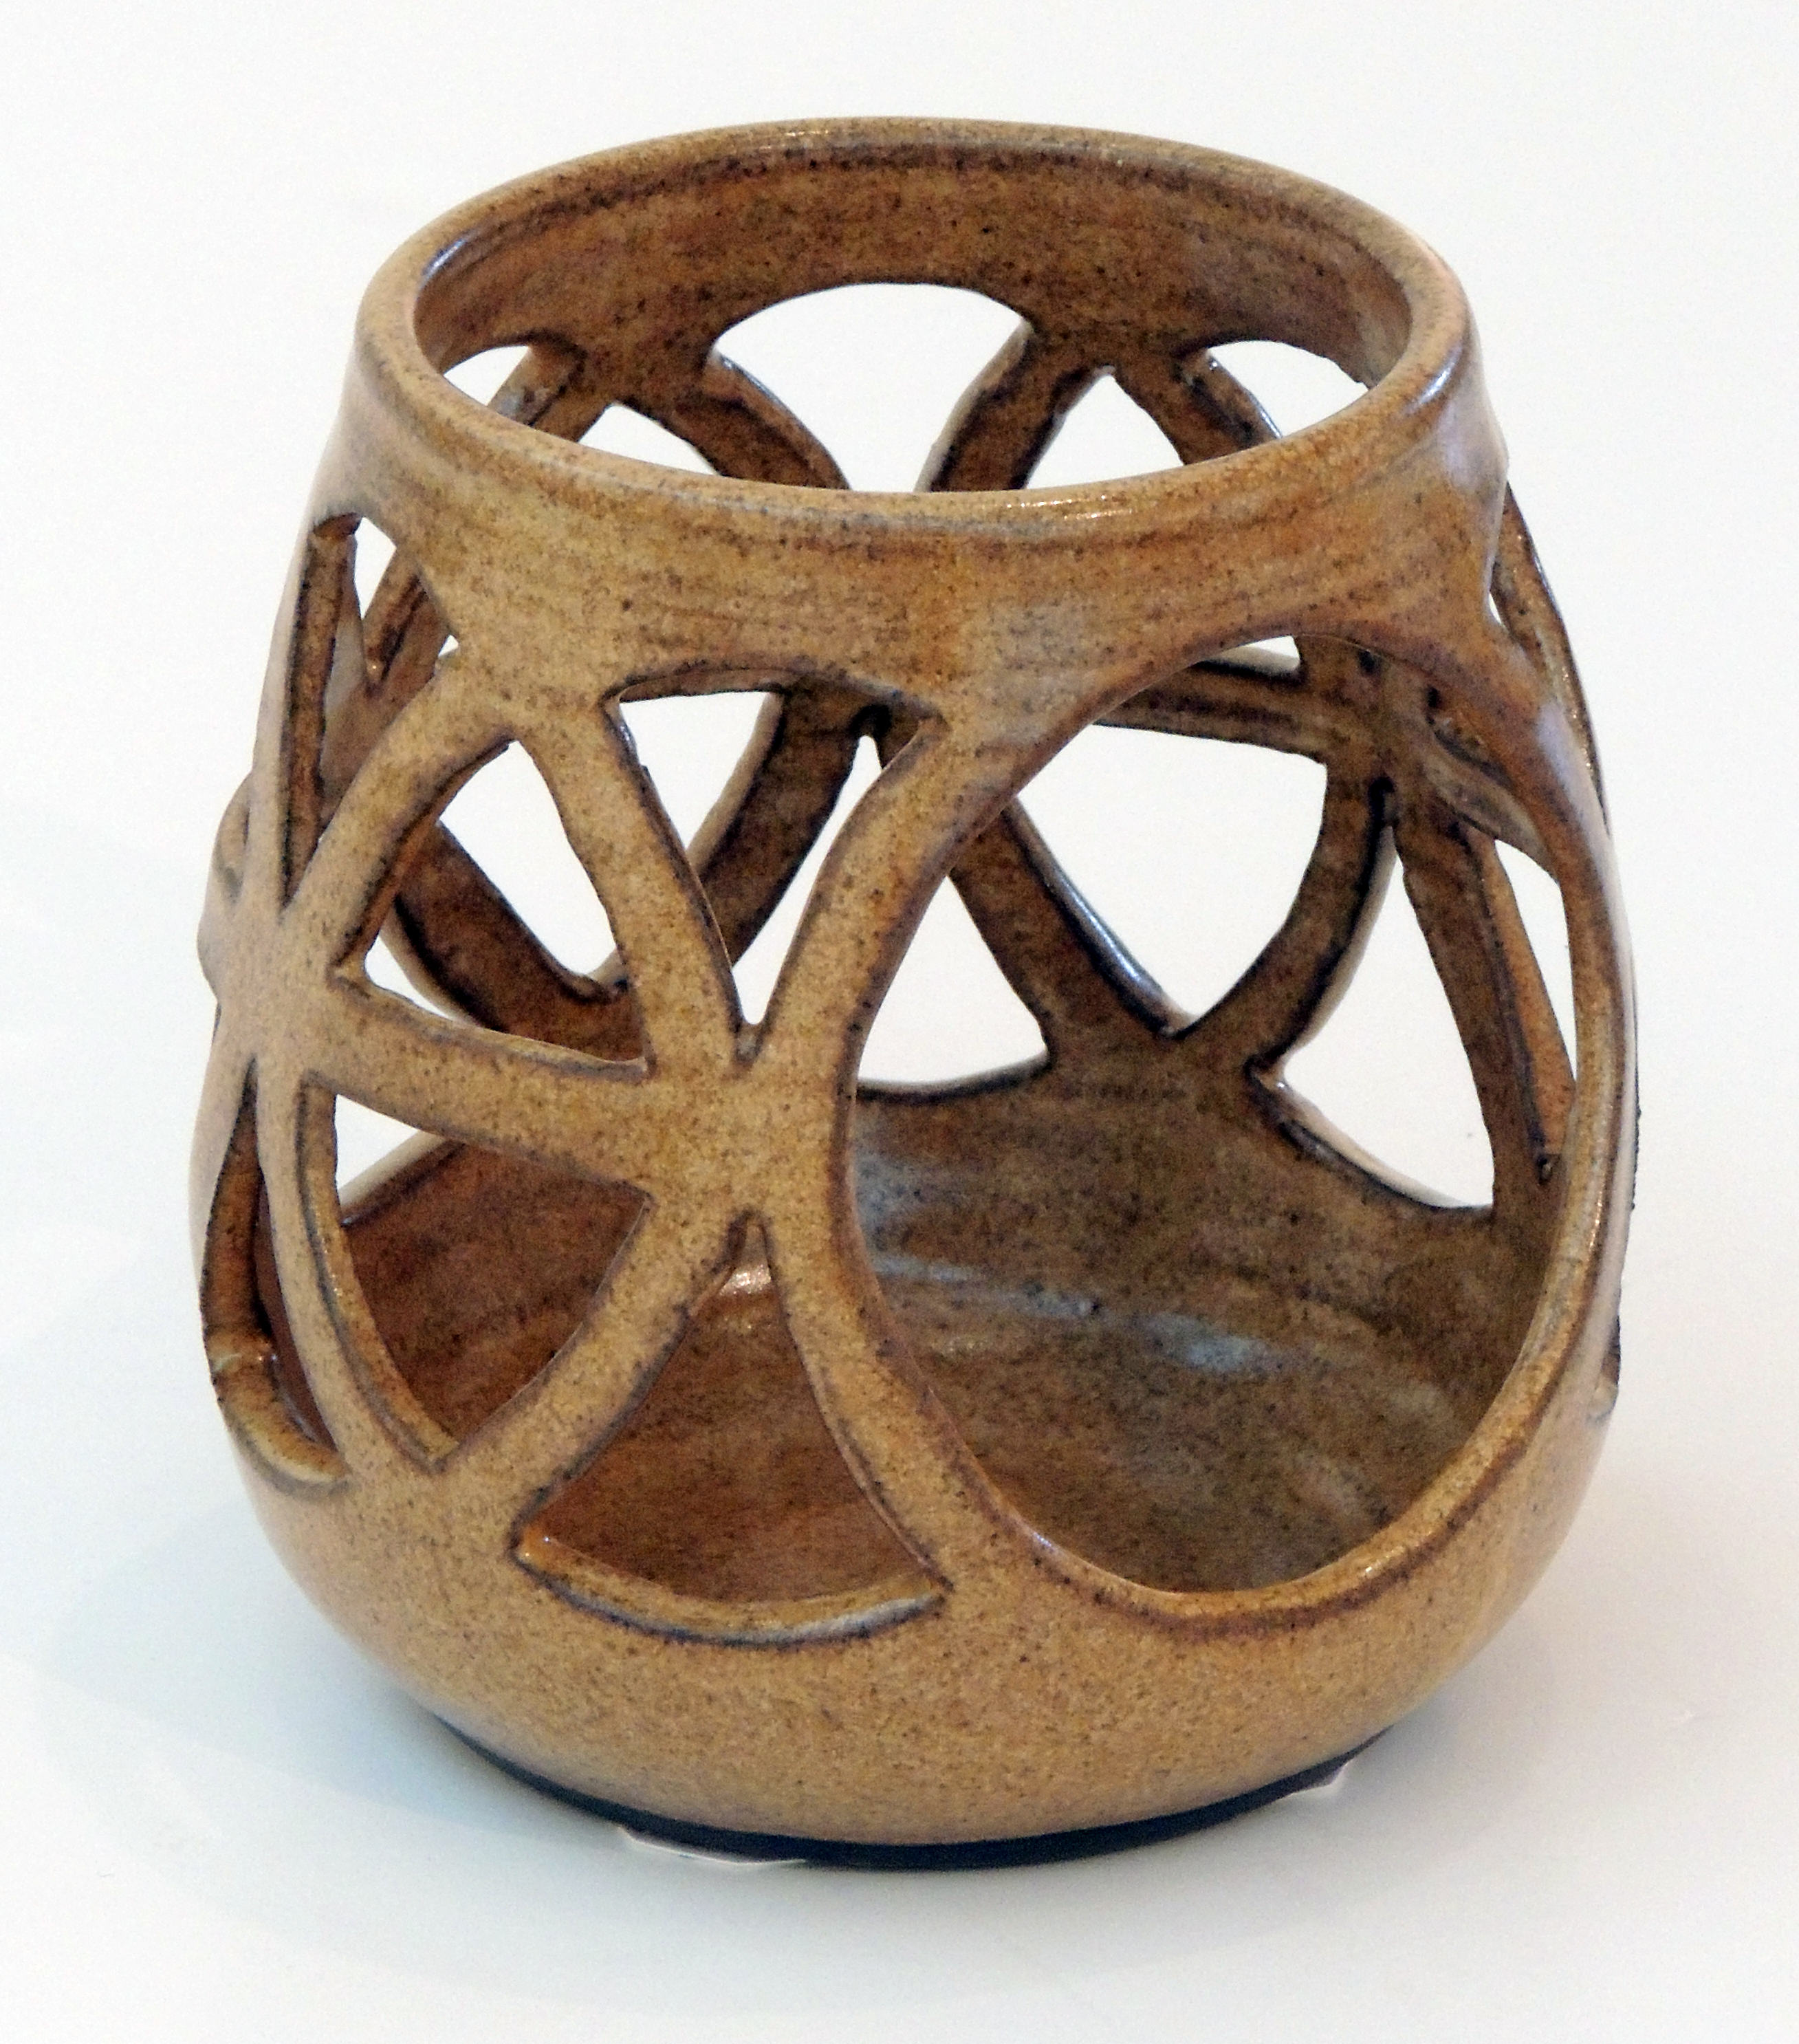 Robert Morris | CARVED CANDLE HOLDER | Stoneware clay